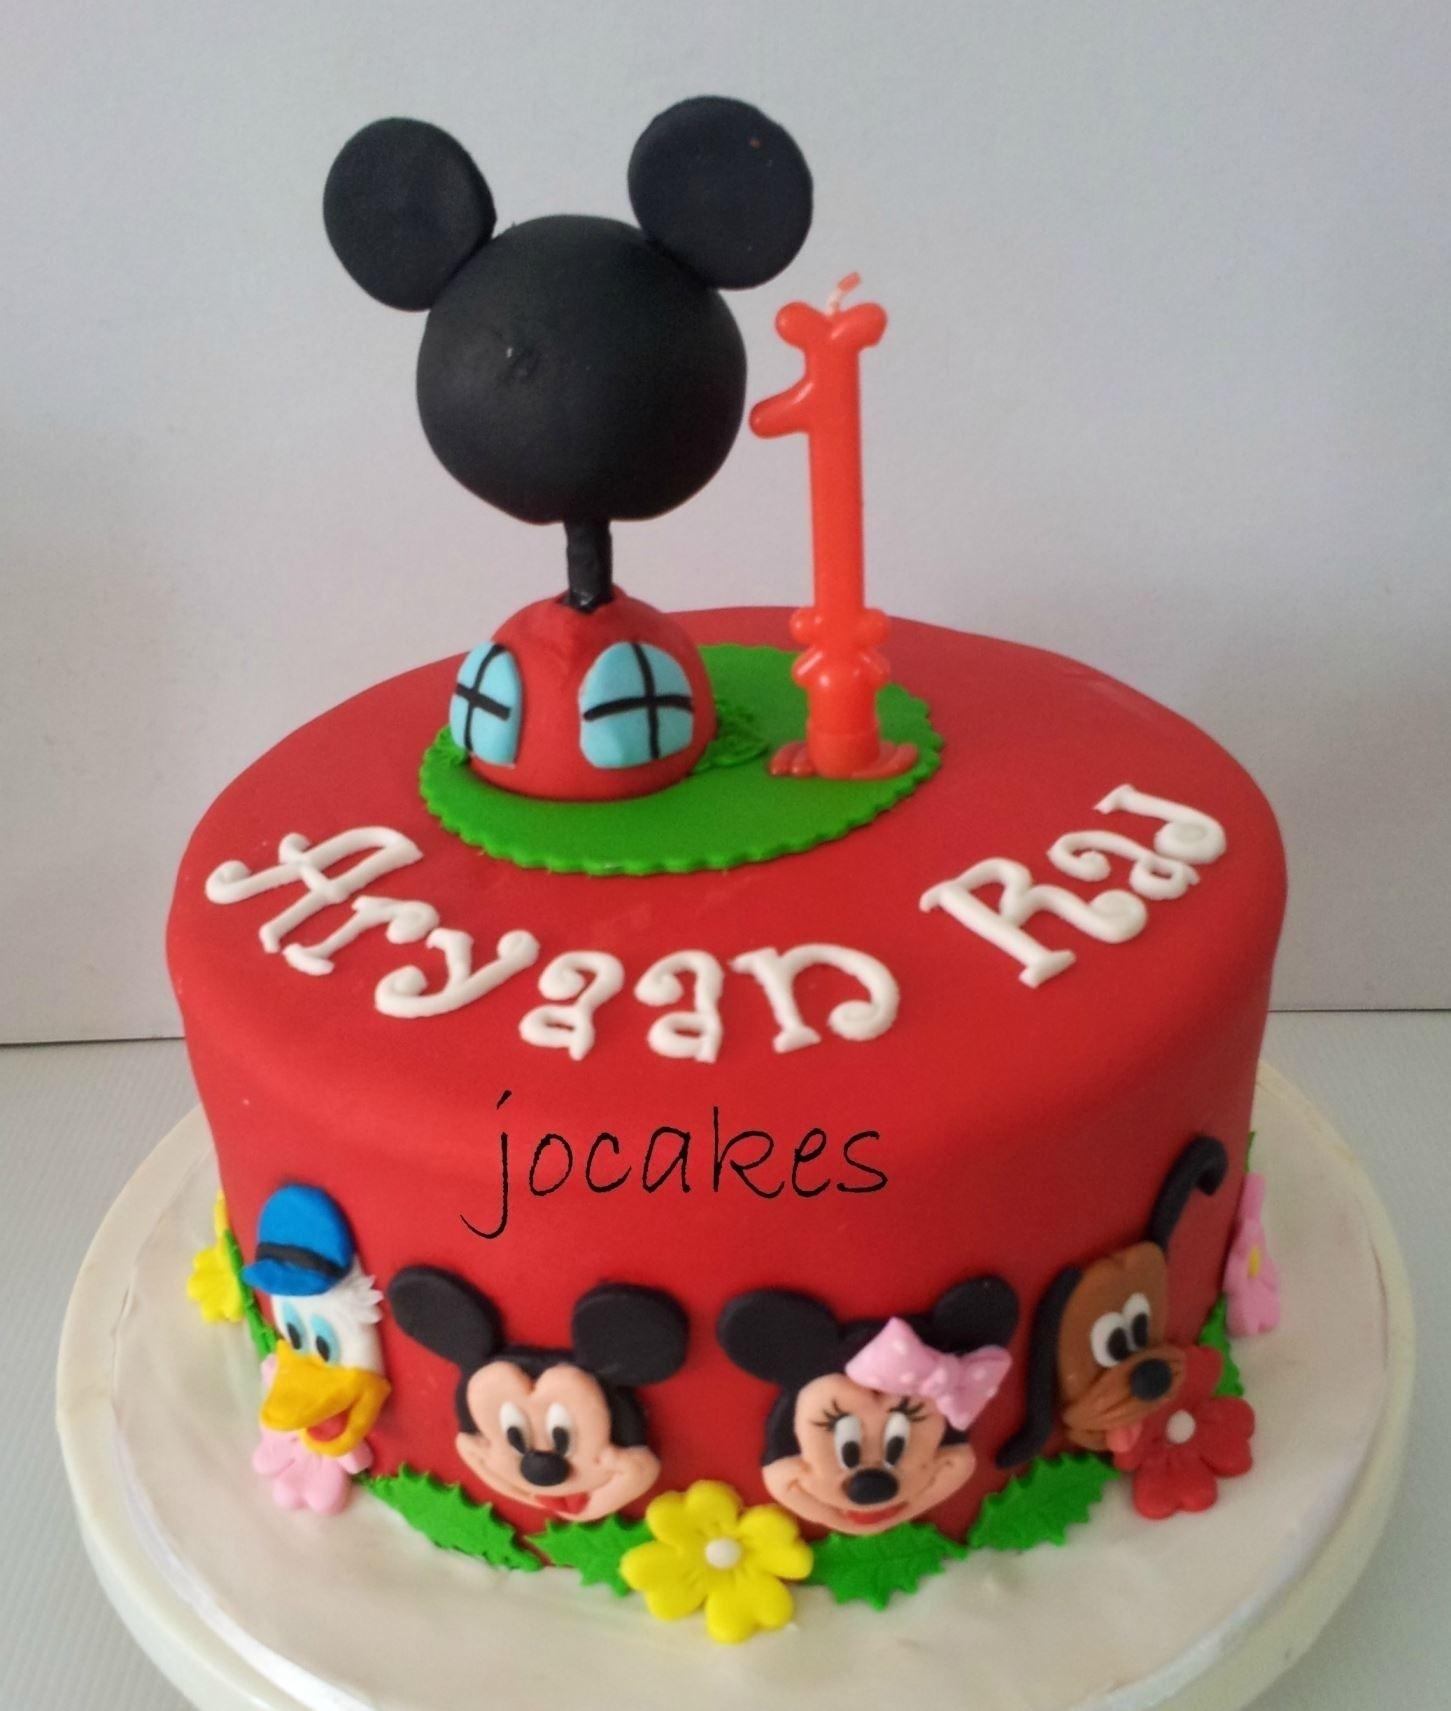 10 Famous 1 Year Old Birthday Cake Ideas 4 year old birthday cake 1 year old birthday cake boys birthday